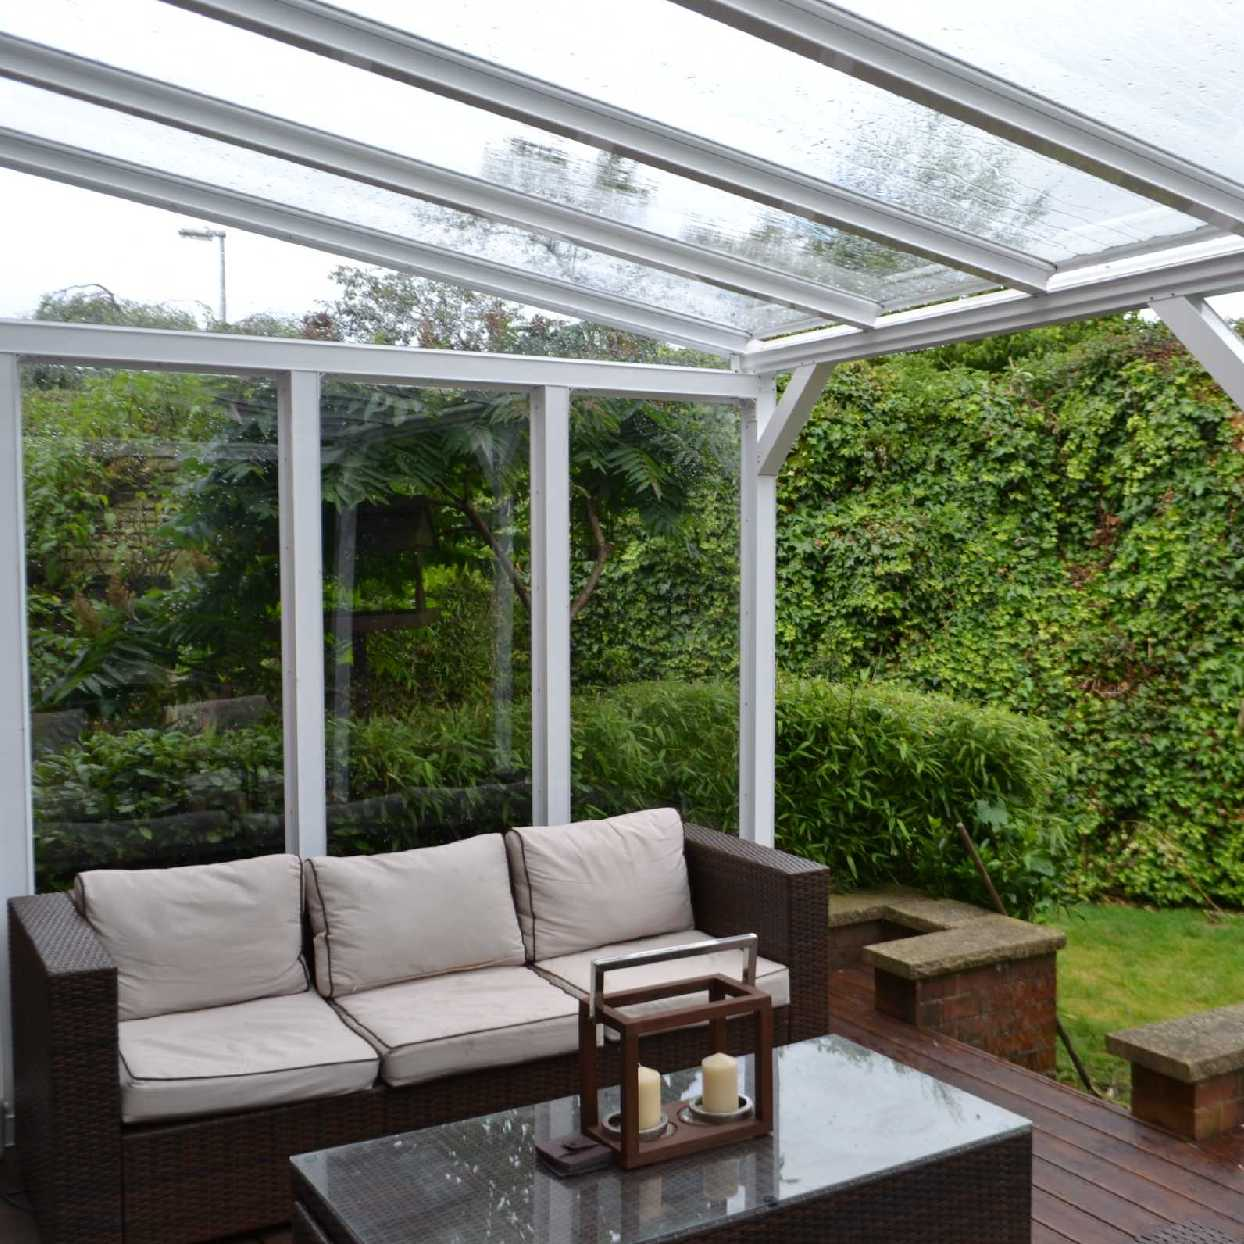 Great selection of Omega Smart White Lean-To Canopy with 16mm Polycarbonate Glazing - 5.2m (W) x 4.5m (P), (3) Supporting Posts